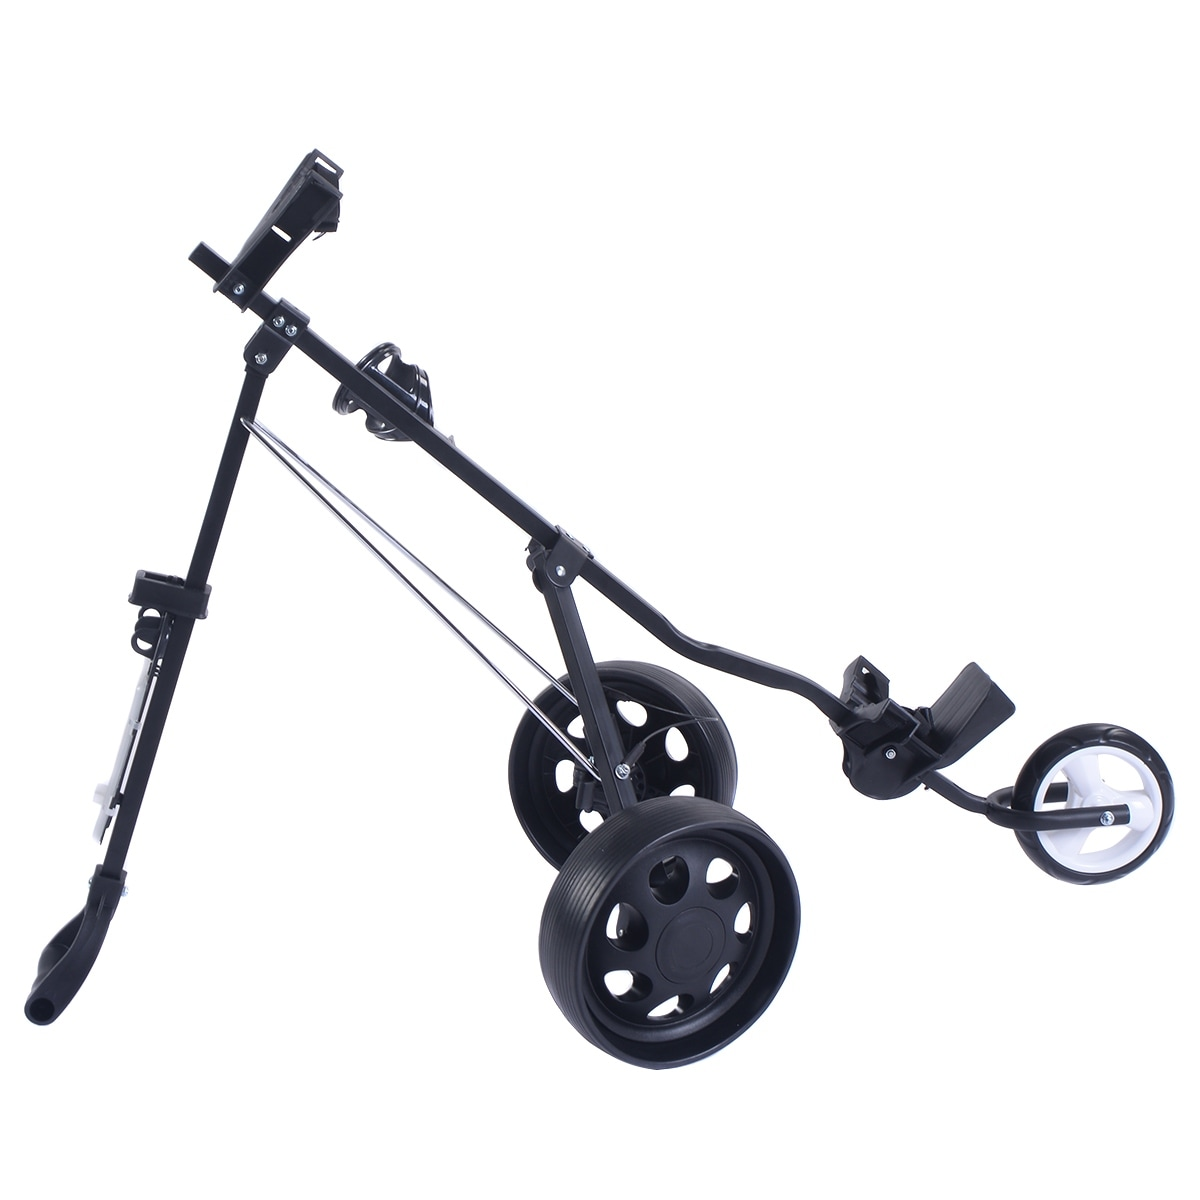 Shop Costway Foldable 3 Wheel Push Pull Golf Cart /Cup Holder ... on golf caddy cup holder, golf bag cup holder, golf pull cart tires, clicgear cup holder, golf pull cart seat, bag boy push cart cup holder,